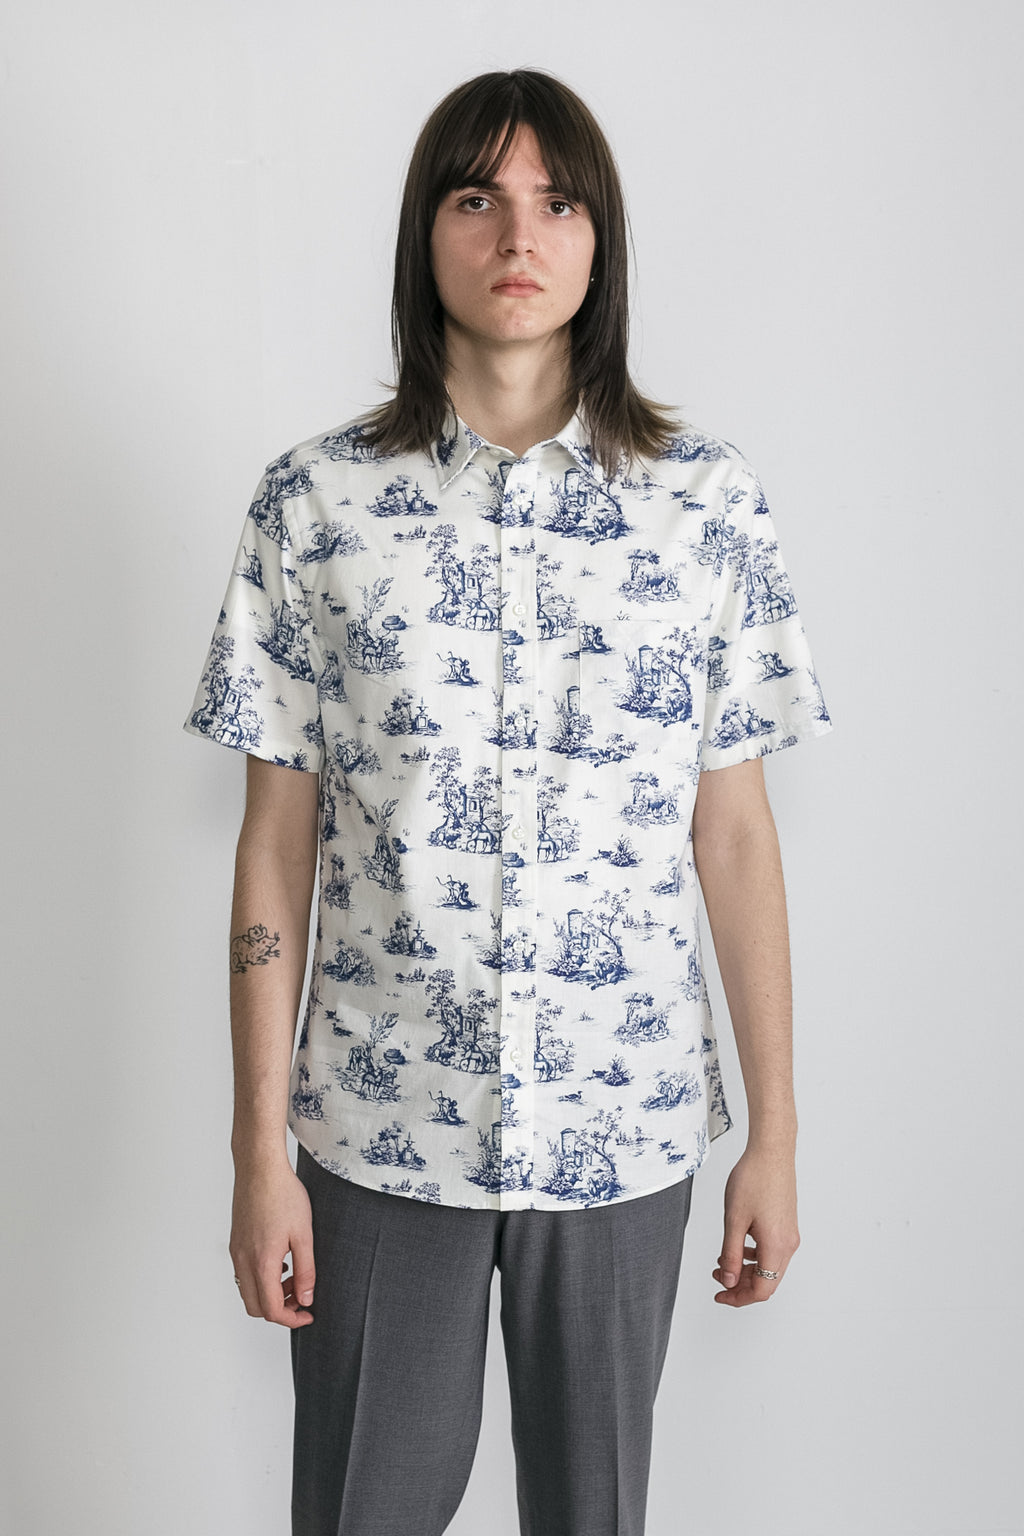 Japanese Safari Print in White and Blue 01